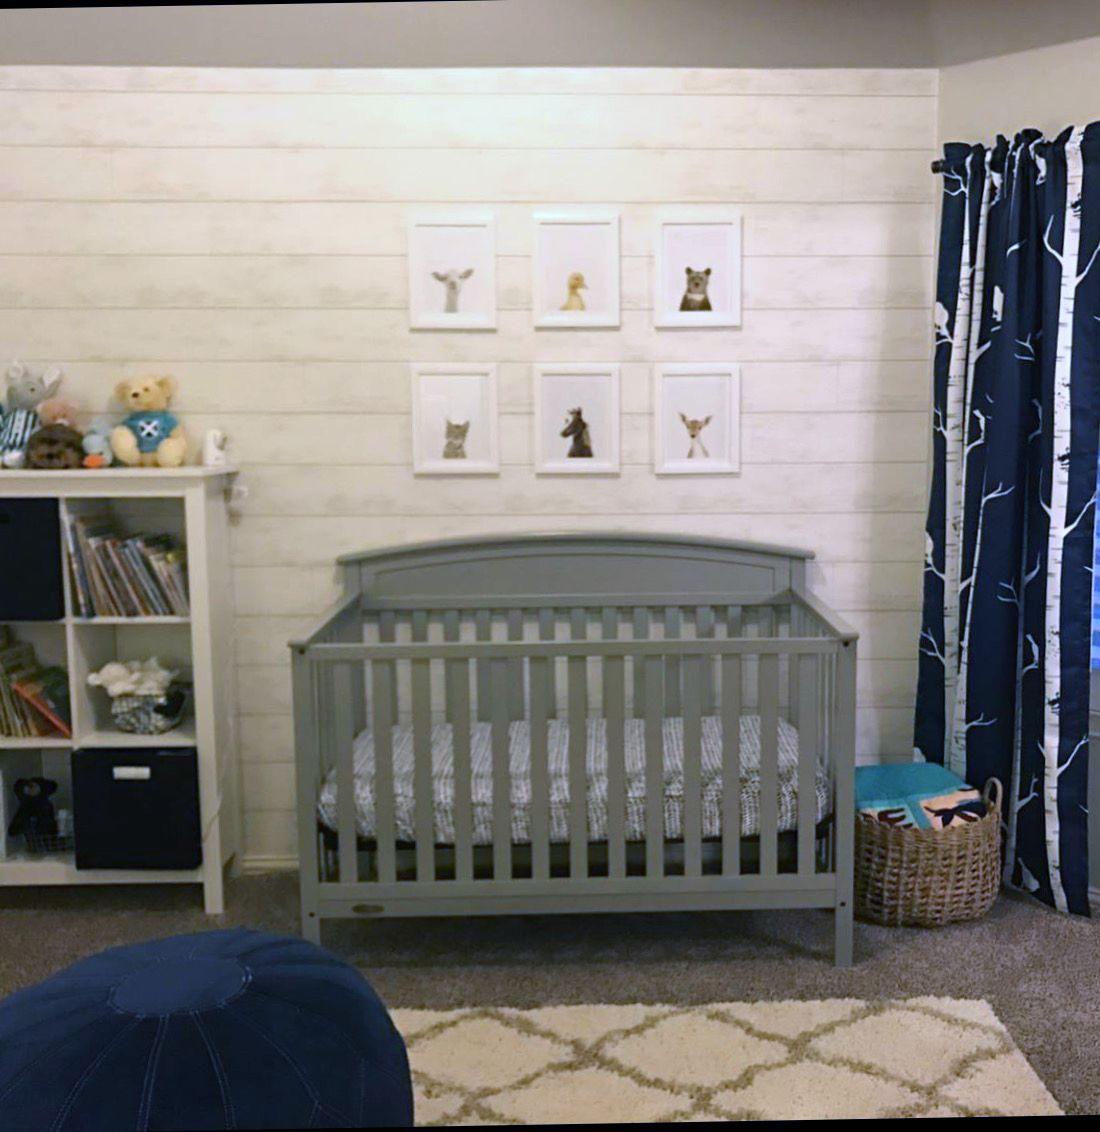 Happy Customer Shared Their Nursery With Accent Wall Of